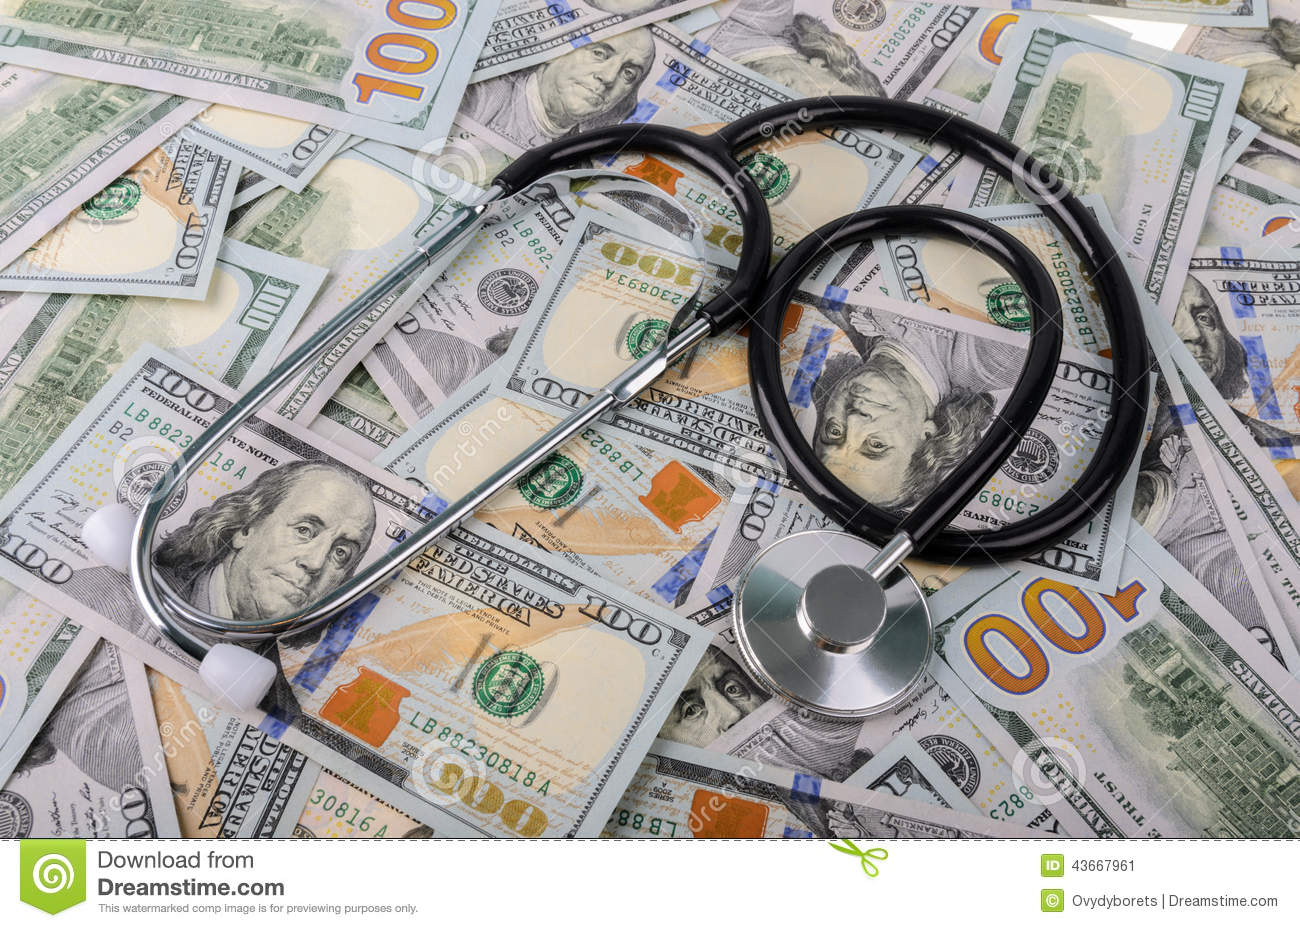 Medical treatment and cost concept: stethoscope placing on US dollars banknotes